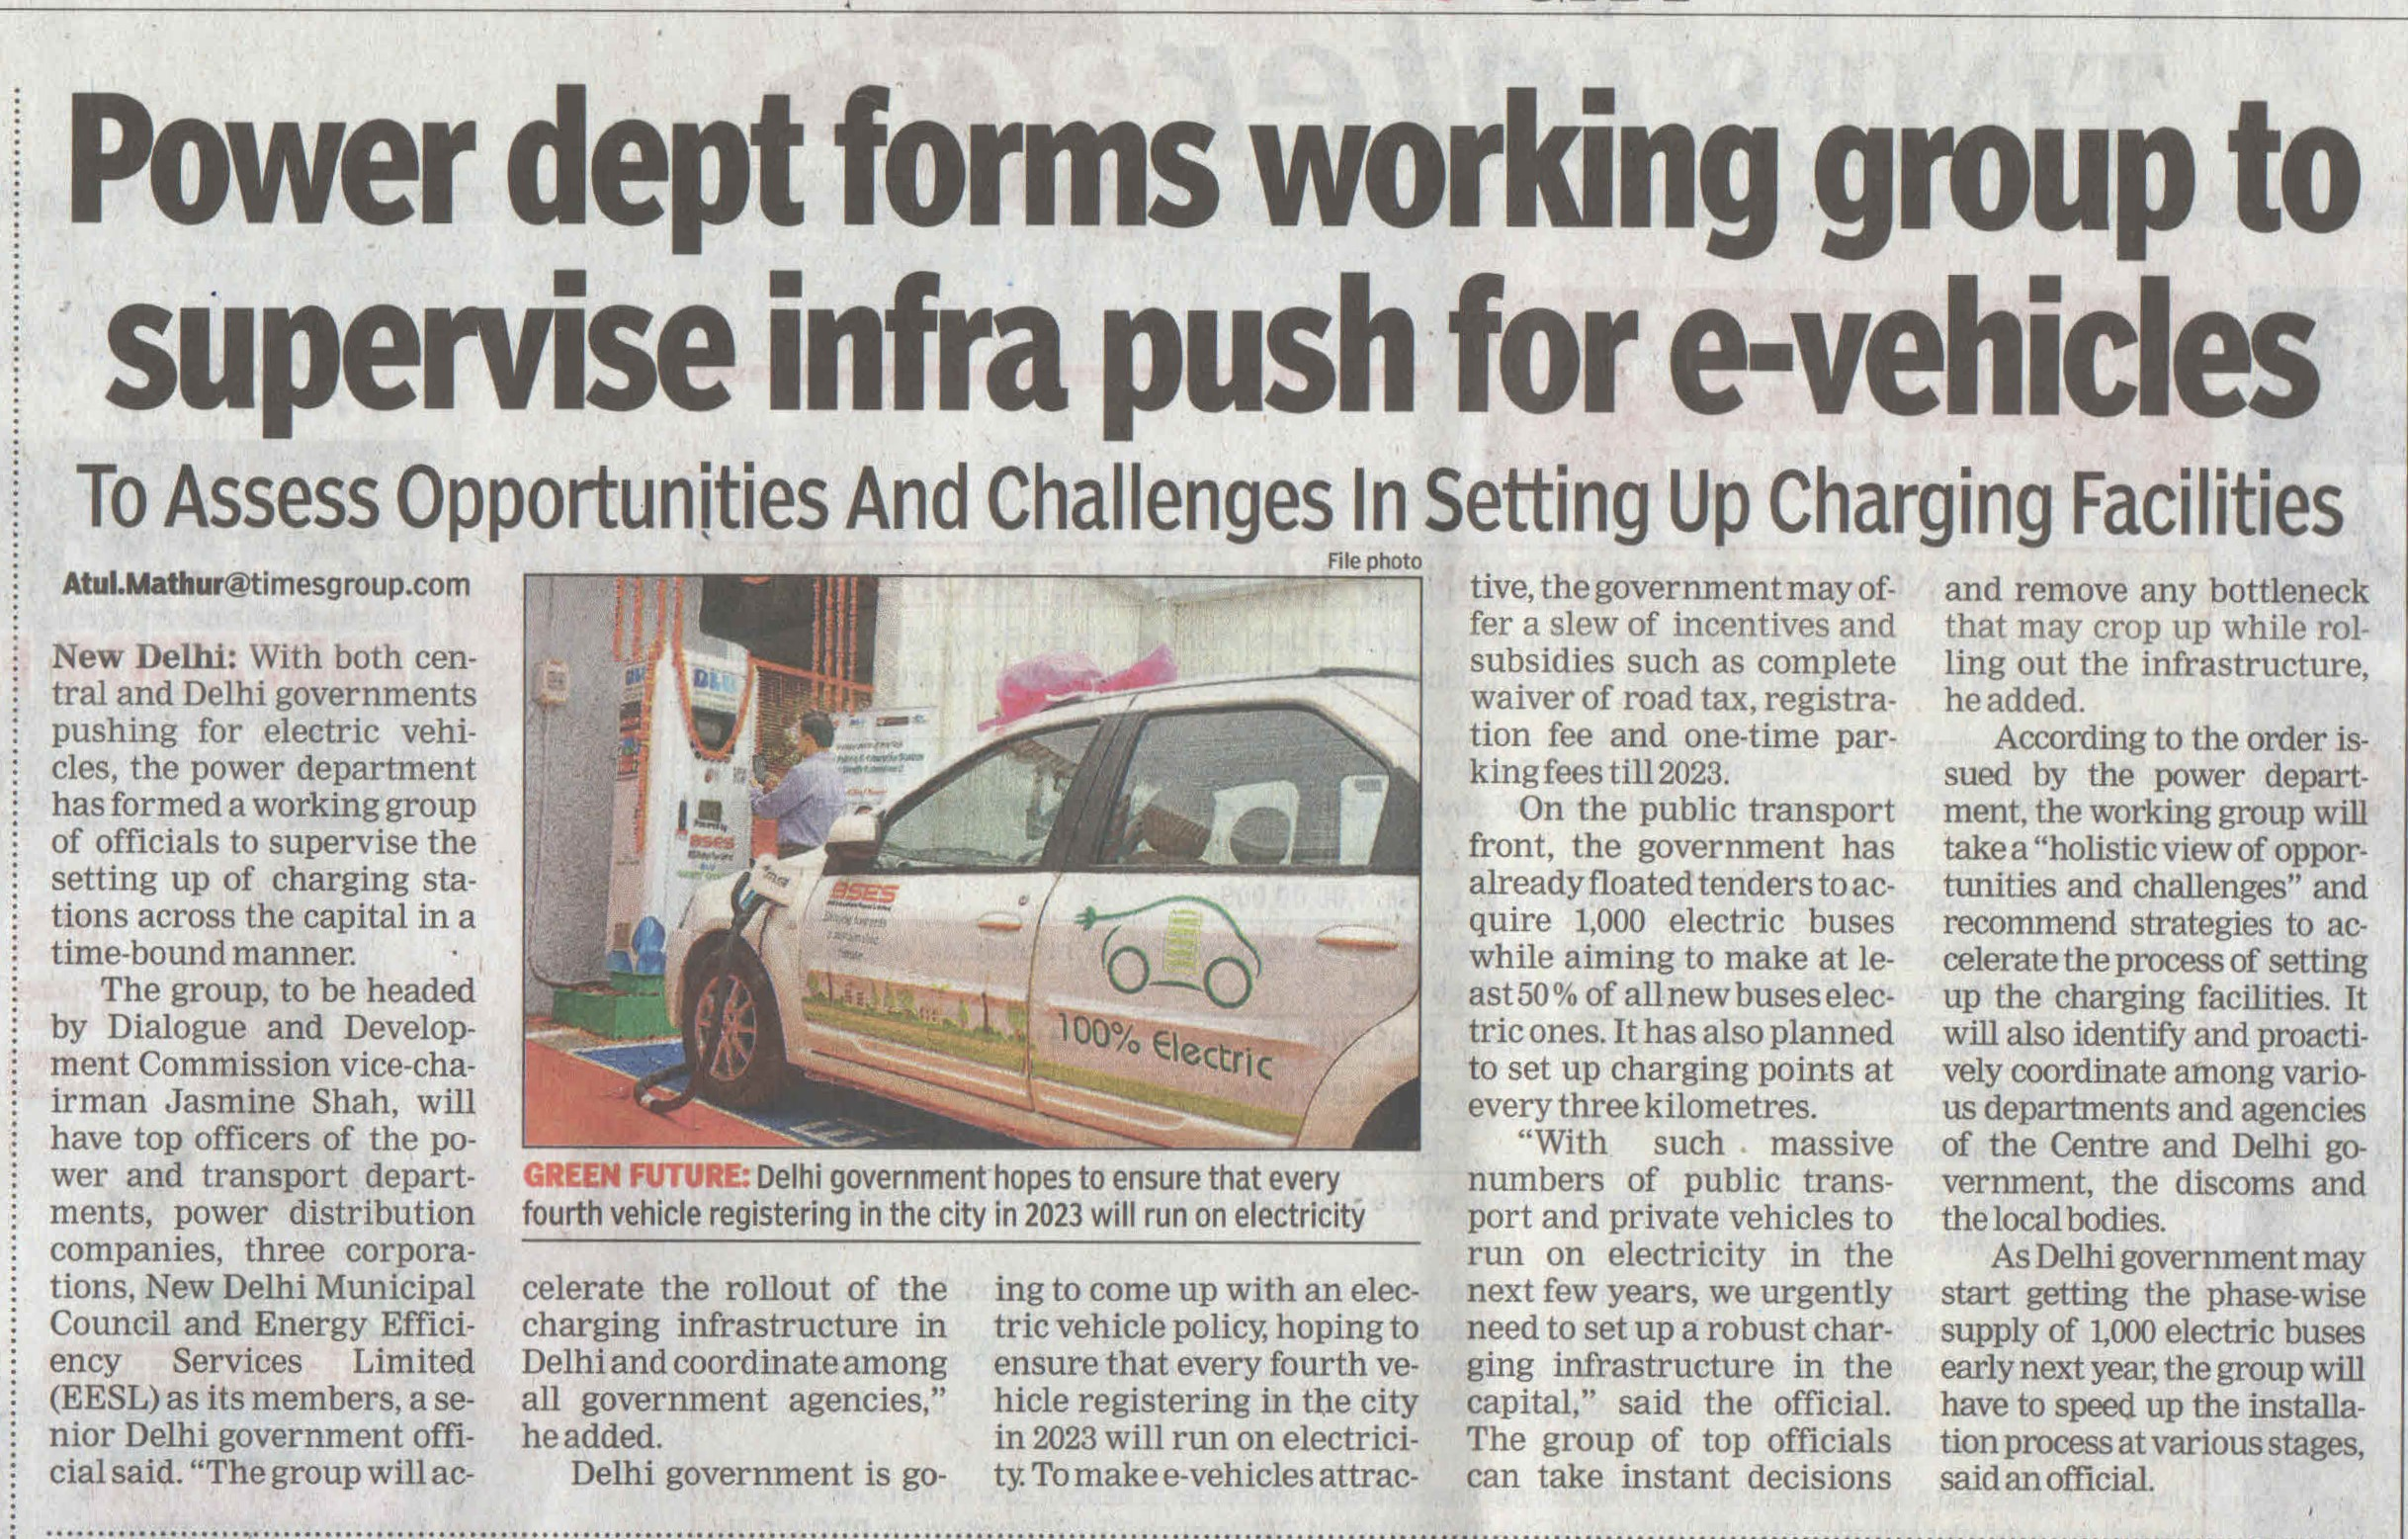 Power Det. forms working group to supervise infra push for e-vehicles